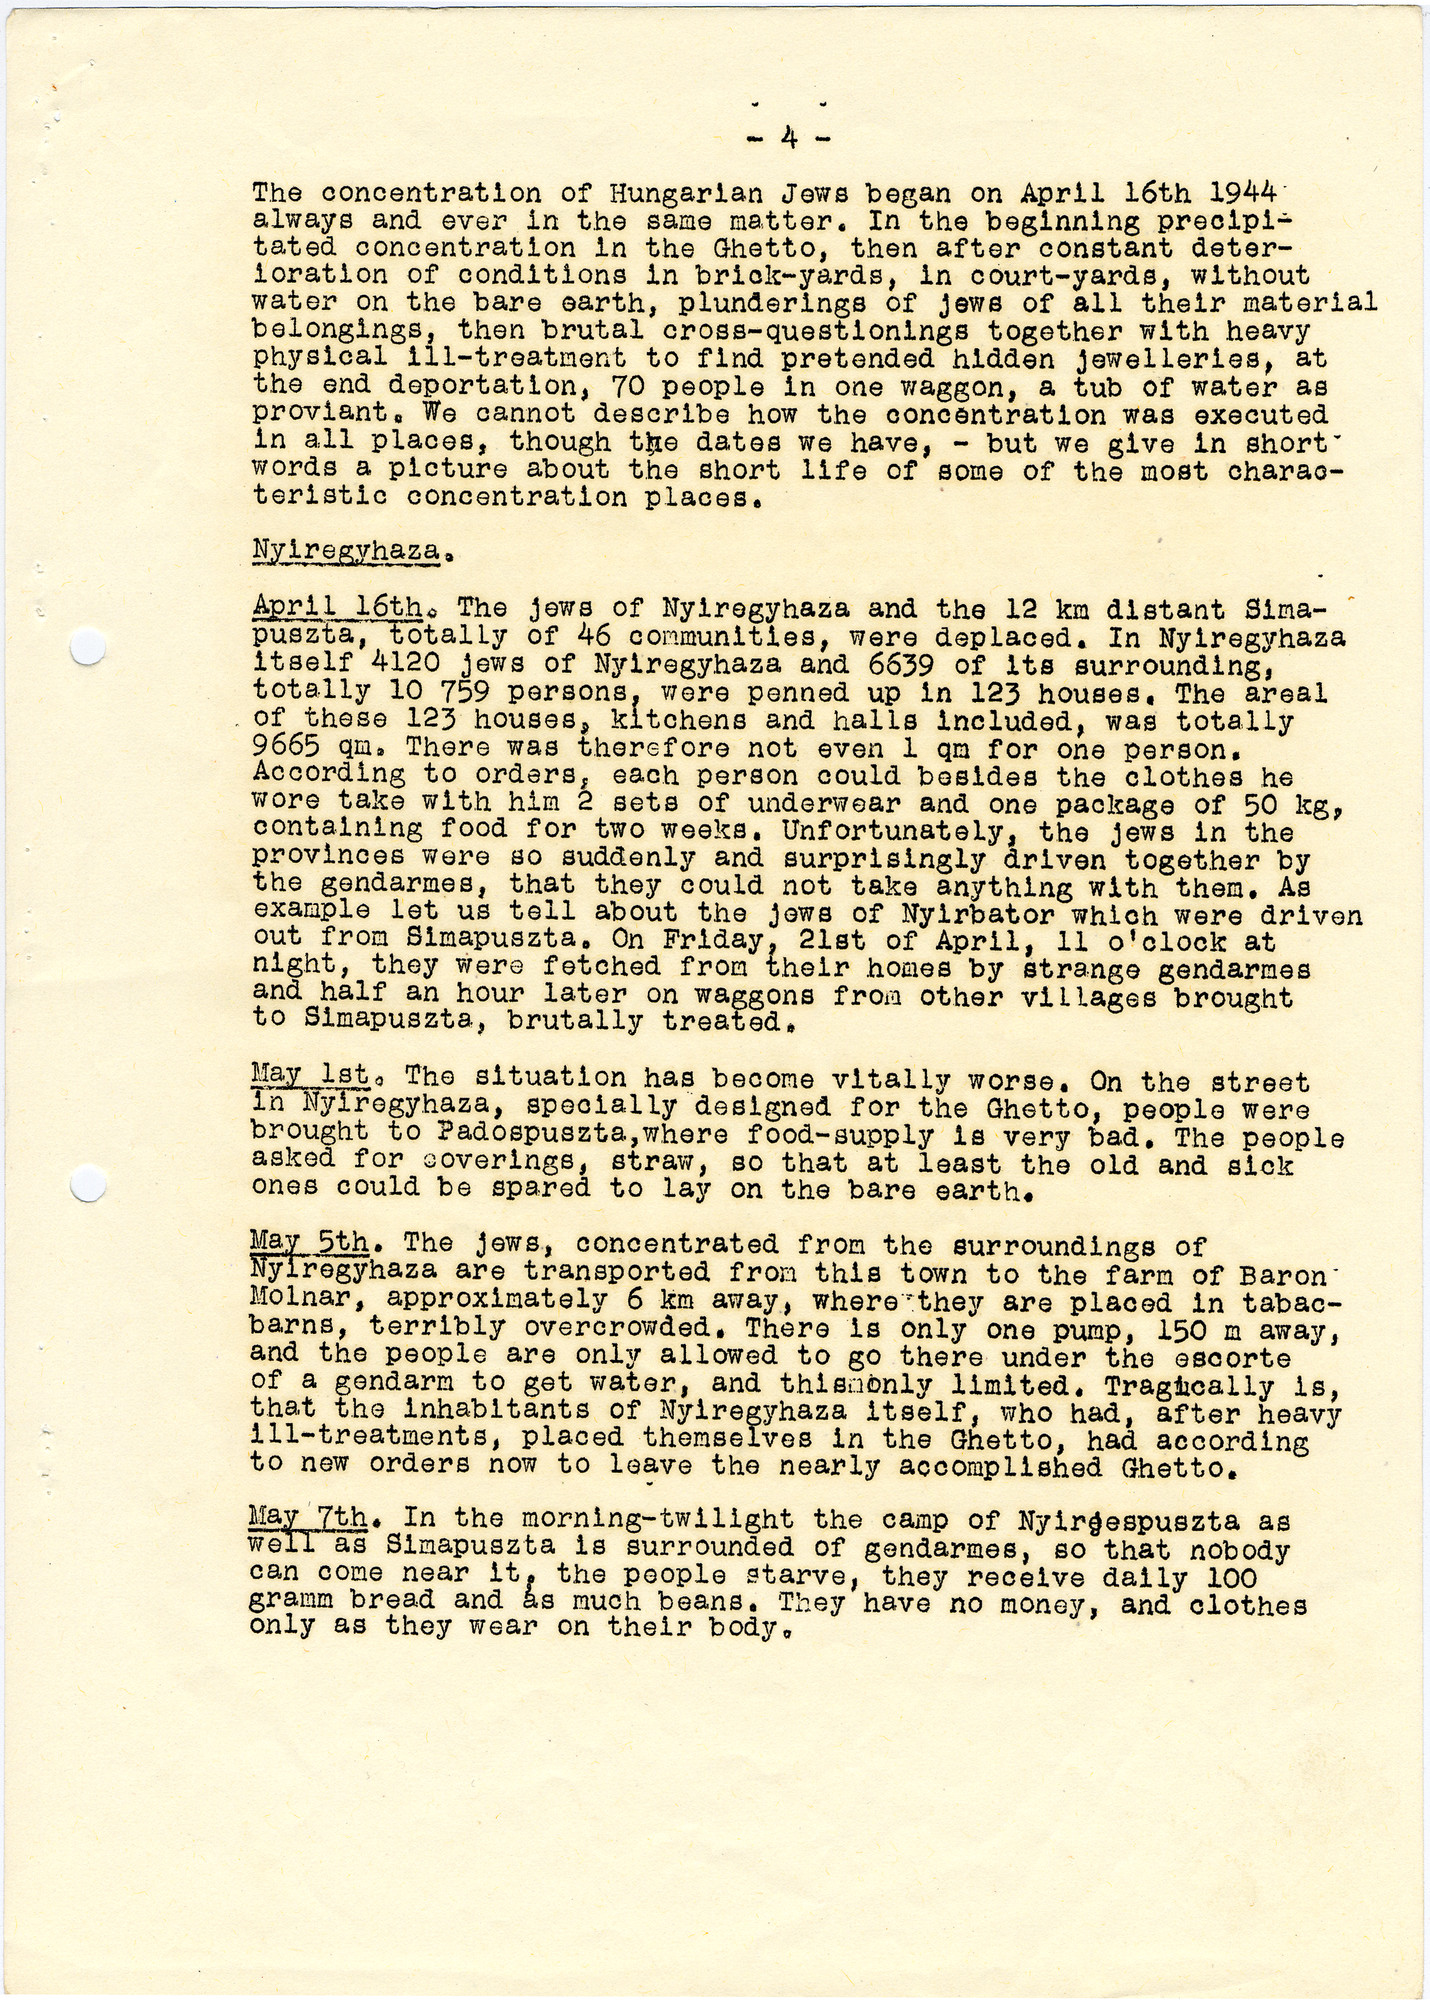 Letter describing the situation of the Jews in Hungary written by Miklos Kraus and appended to an abridged copy fo the Auschwitz Protocol.  The document was translated into English by students hired by George Mandel-Mantello.